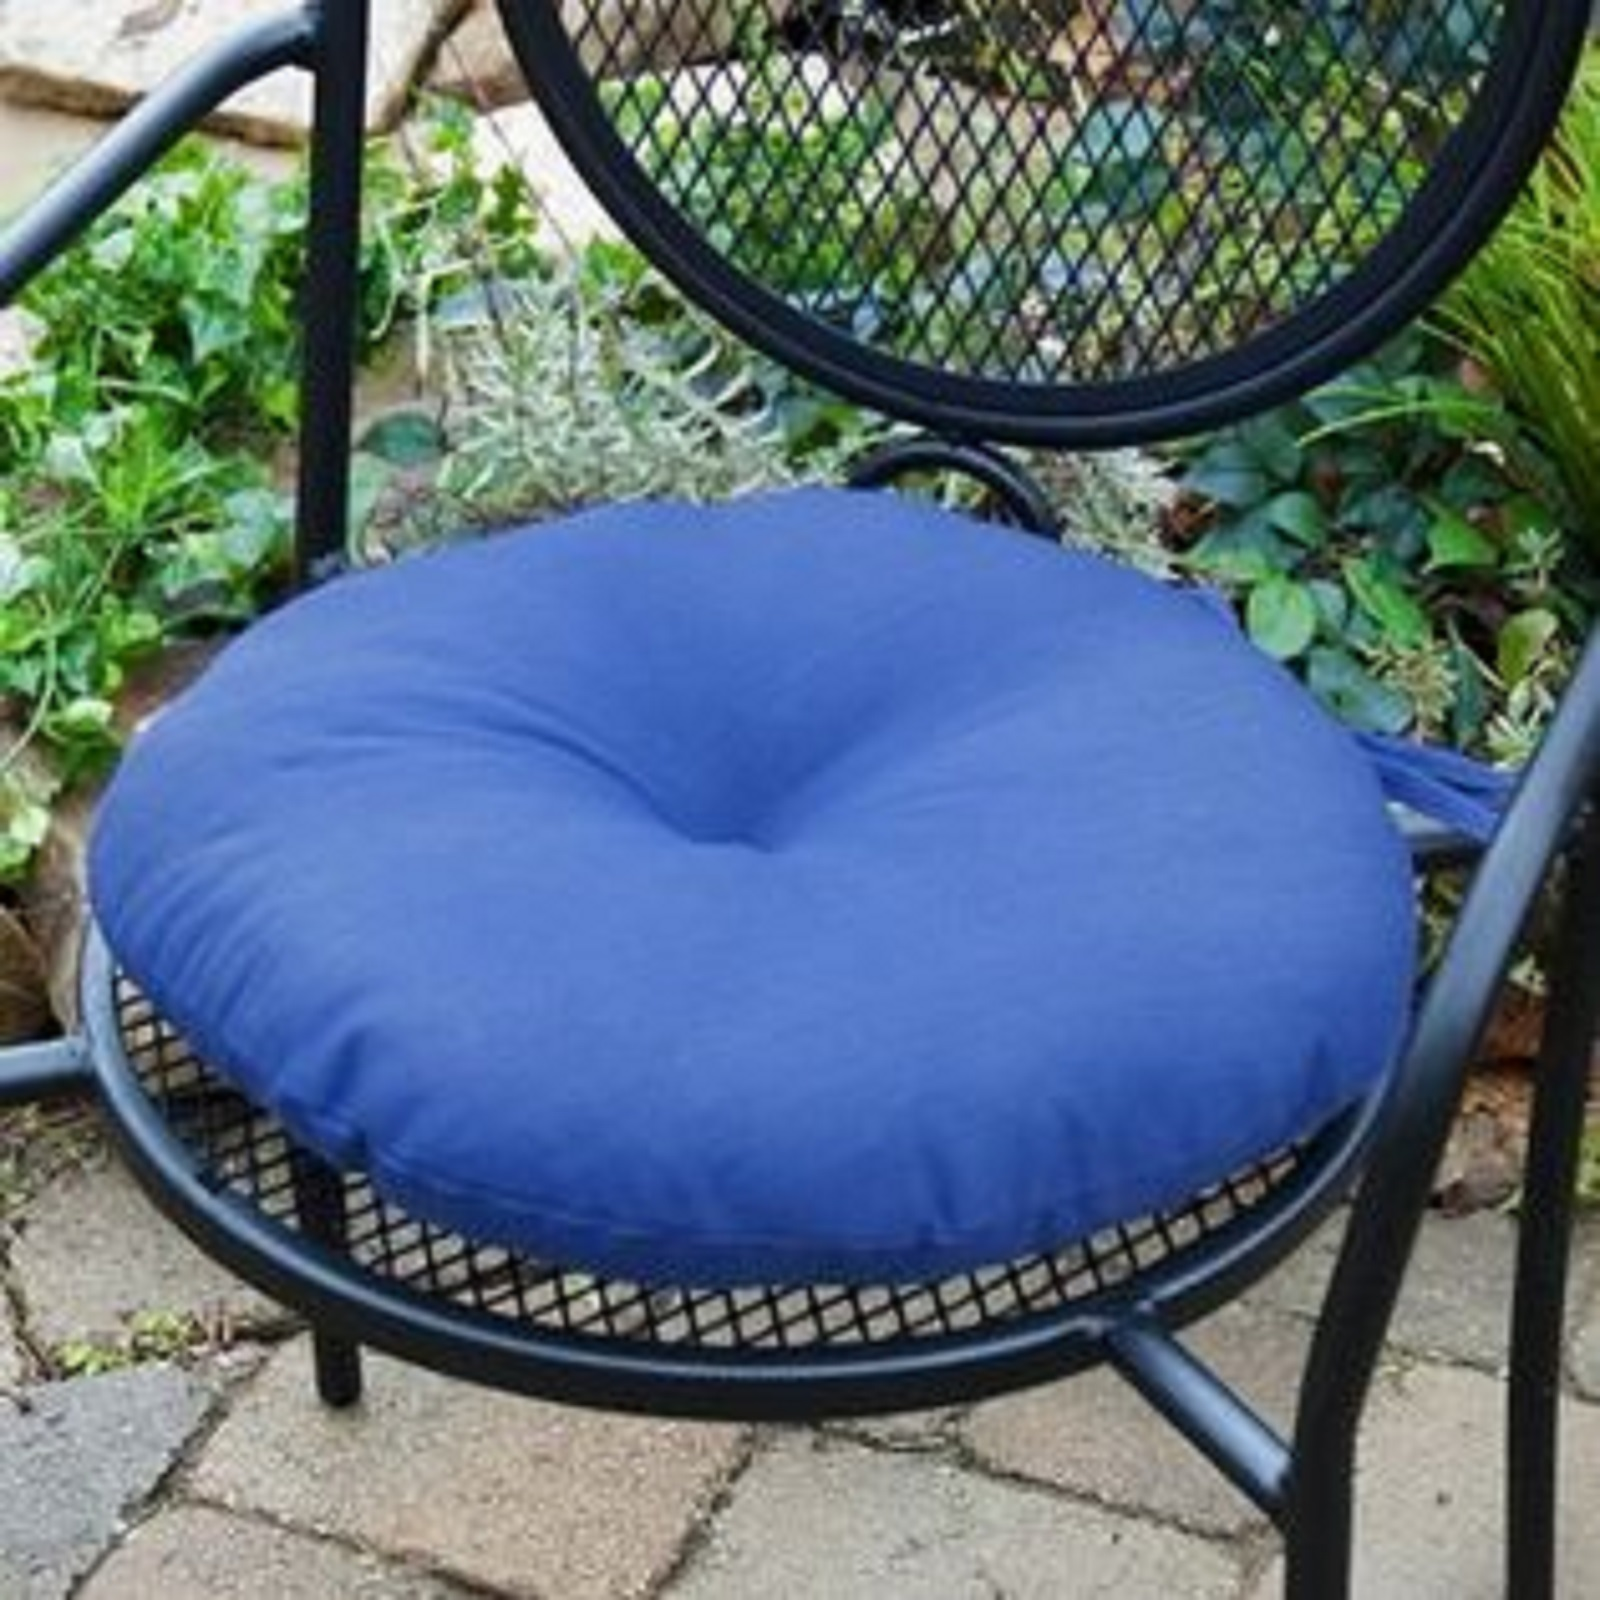 Greendale Home Fashions 18 in Round Outdoor Bistro Chair